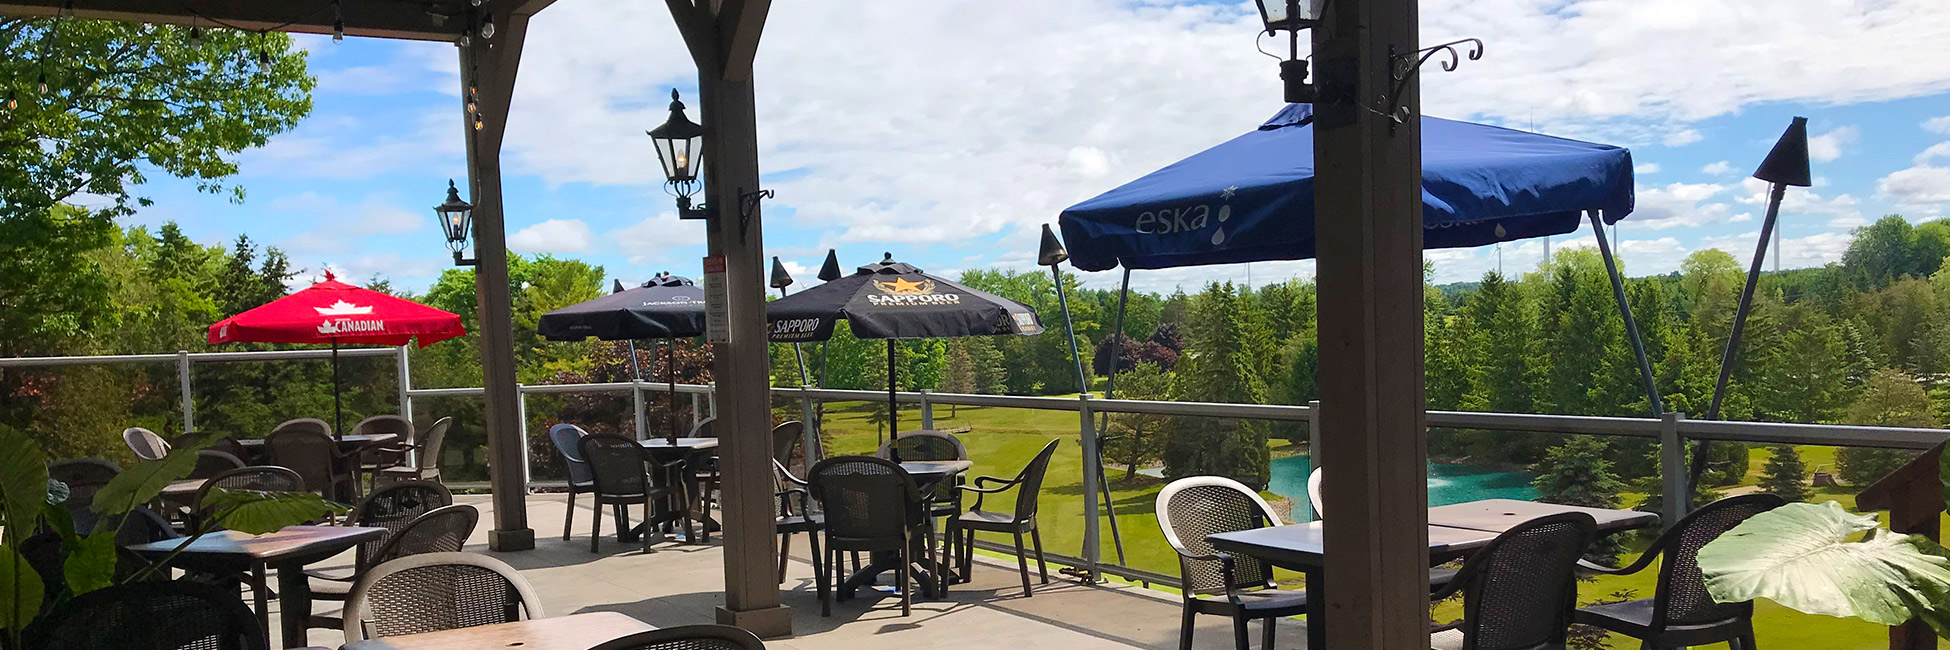 Patio Grand Bend Restaurant Daves Pub & Grill